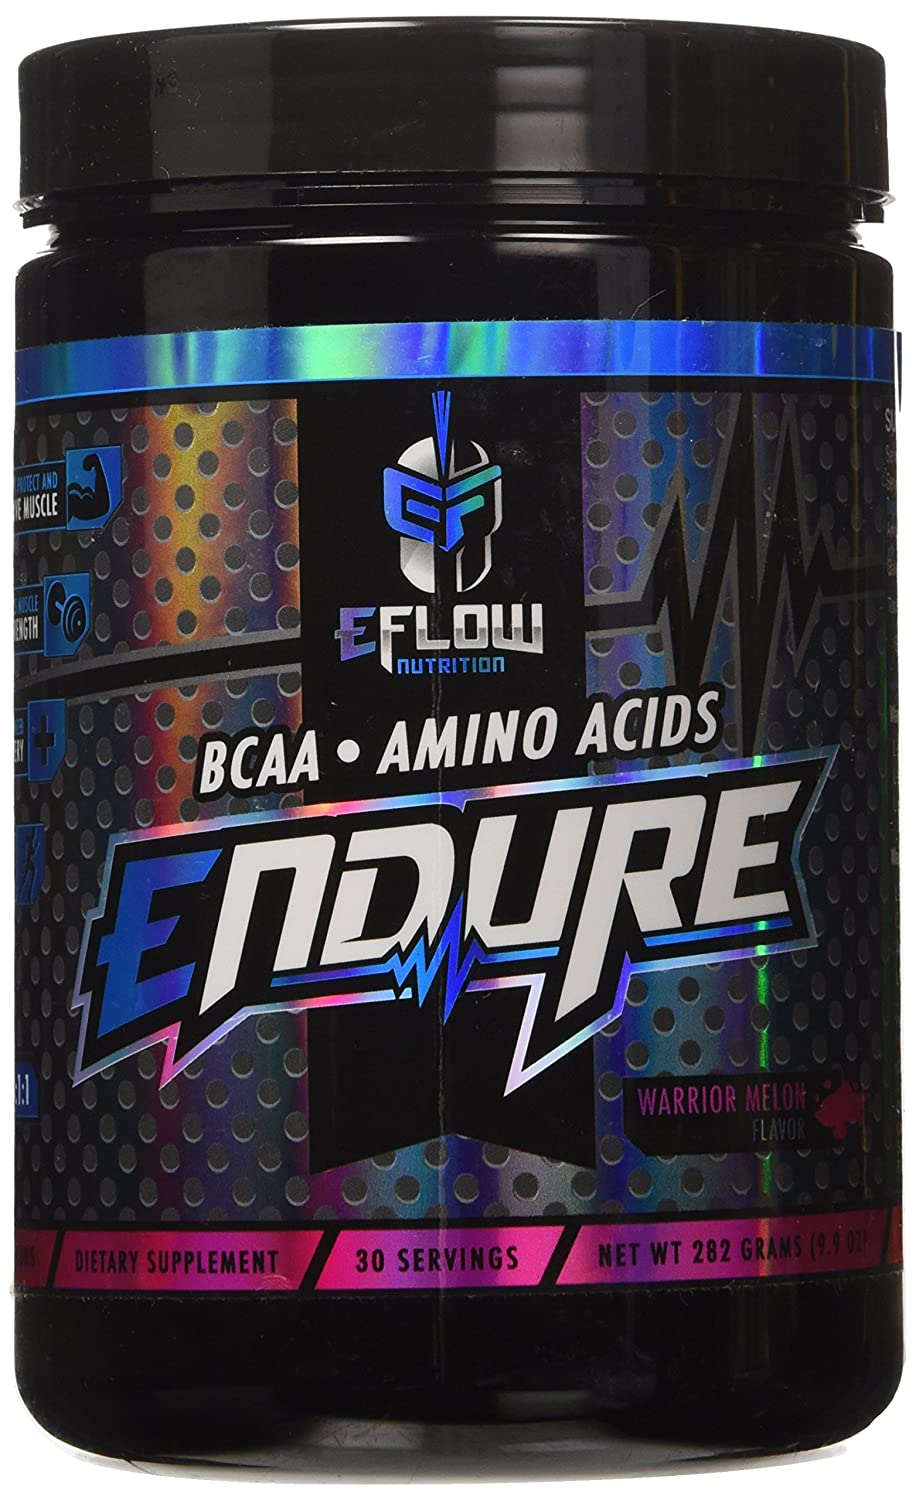 eFlow ENDURE Warrior BCAA Supplement